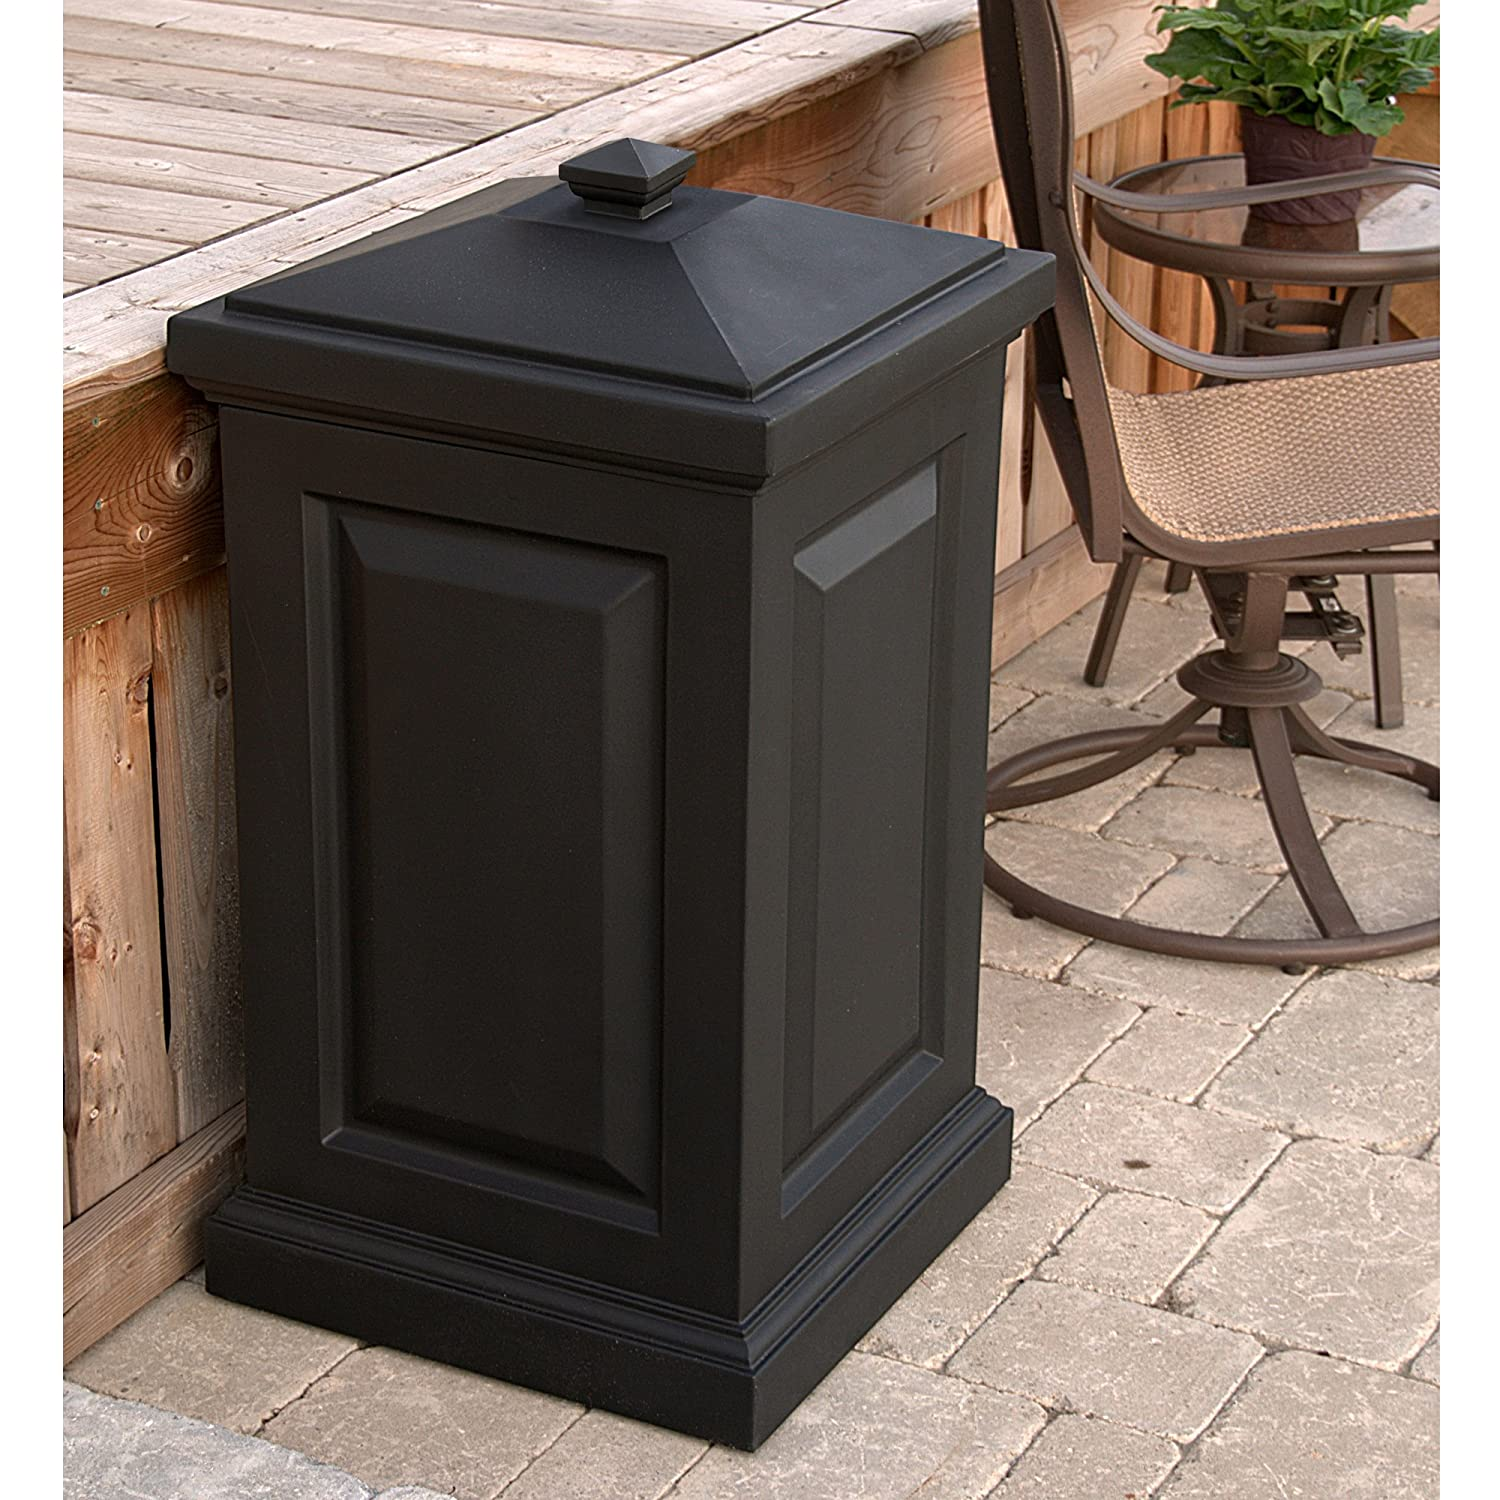 Marvelous Amazon.com: Mayne 4835 B Berkshire Storage Bin, Black: Home Improvement